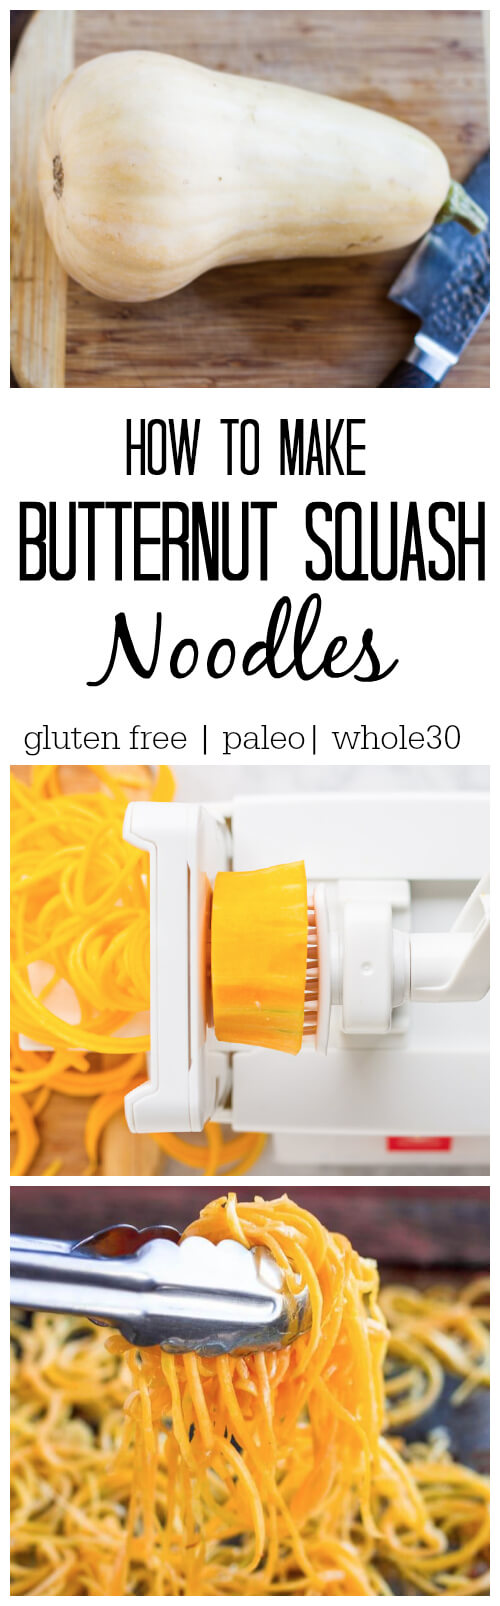 spiralizer making noodles from butternut squash